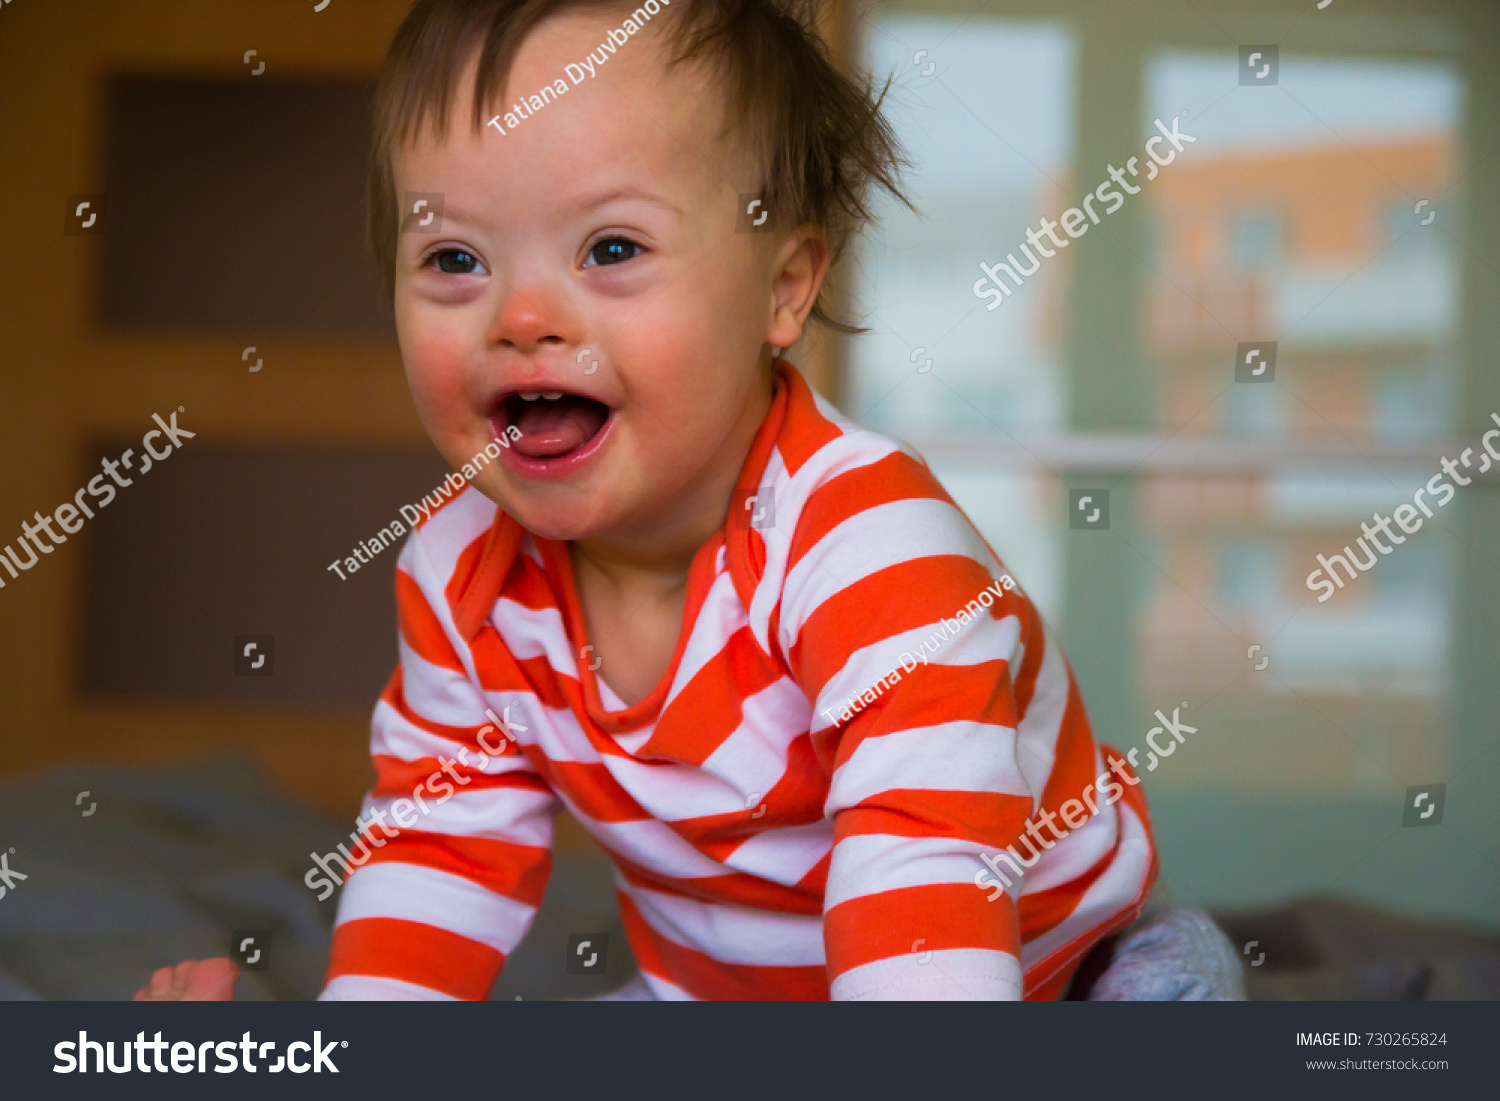 Portrait of cute baby boy with Down syndrome on the bed in home bedroom #730265824